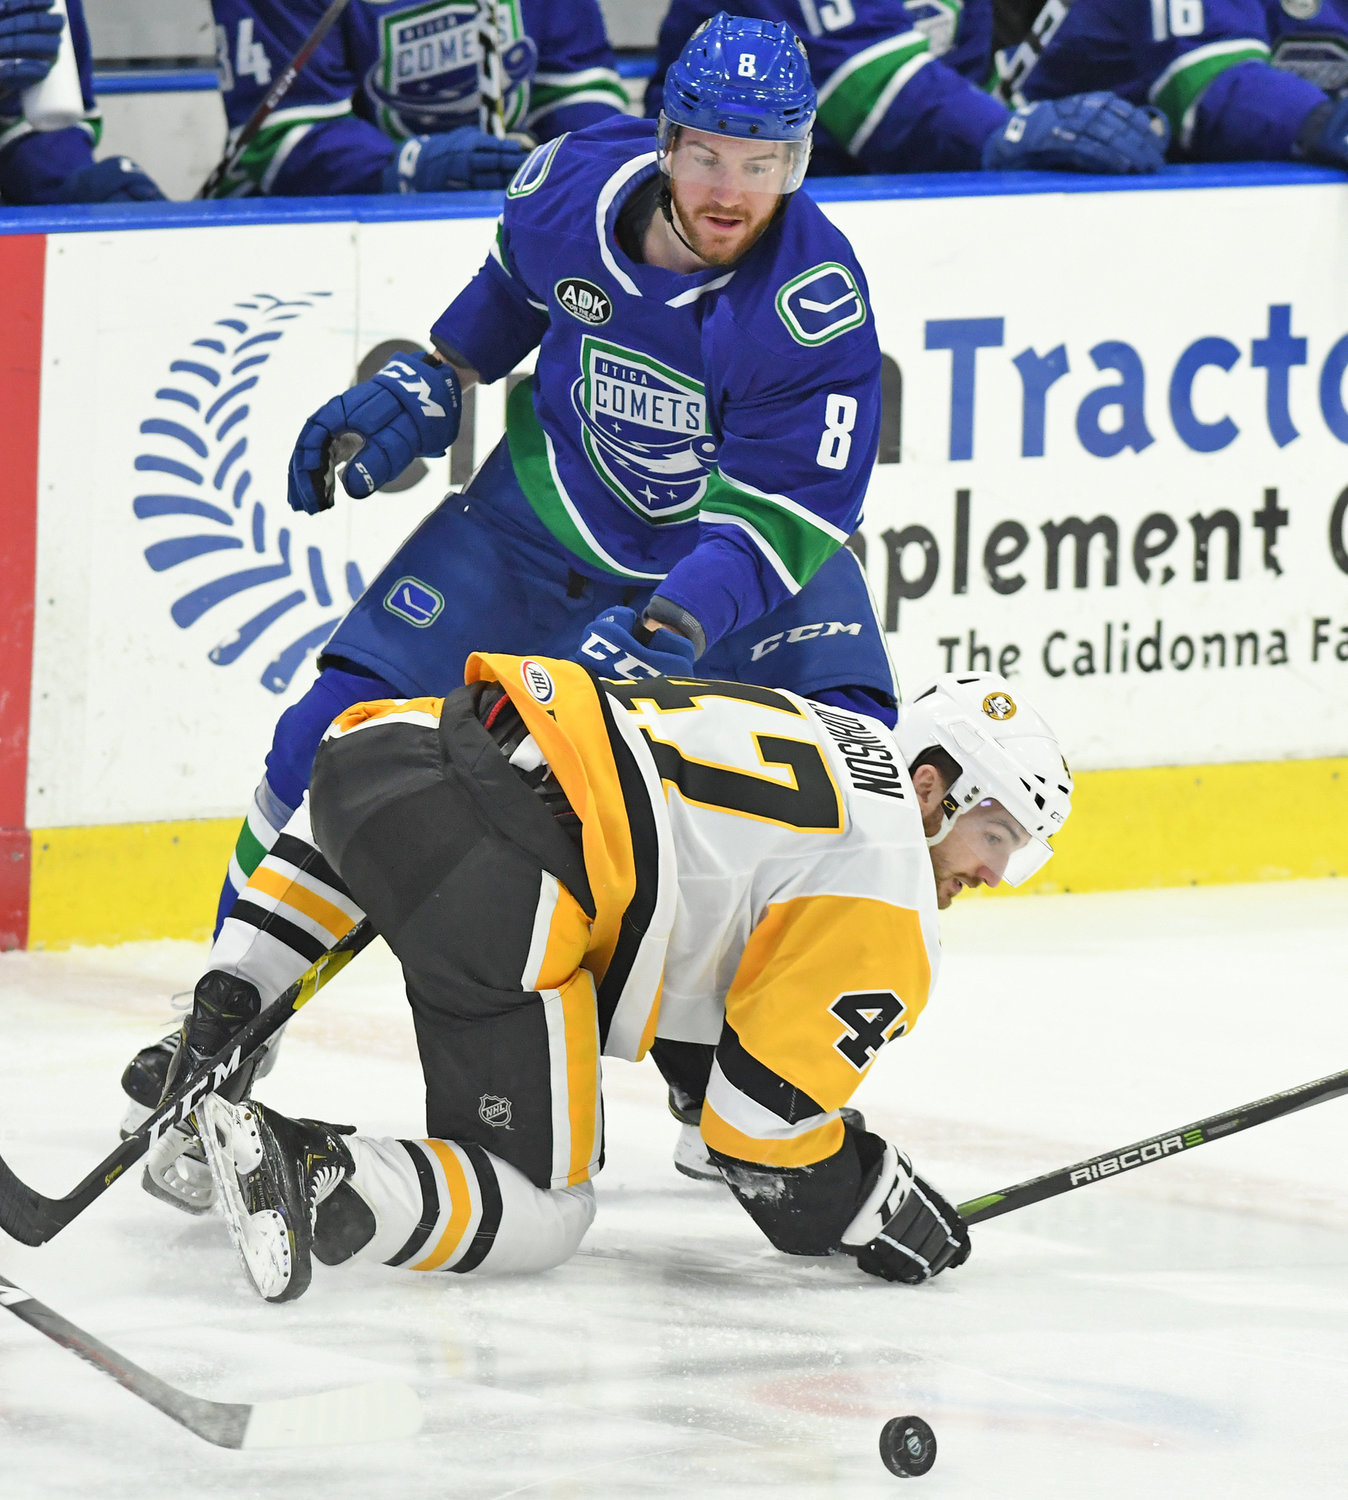 PHYSICAL BATTLE — Comets defender Dylan Blujus eyes the puck as Adam Johnson of Wilkes-Barre/Scranton gets back to his feet during the first period of Friday's 8-1 win by the Comets at the Utica Aud.